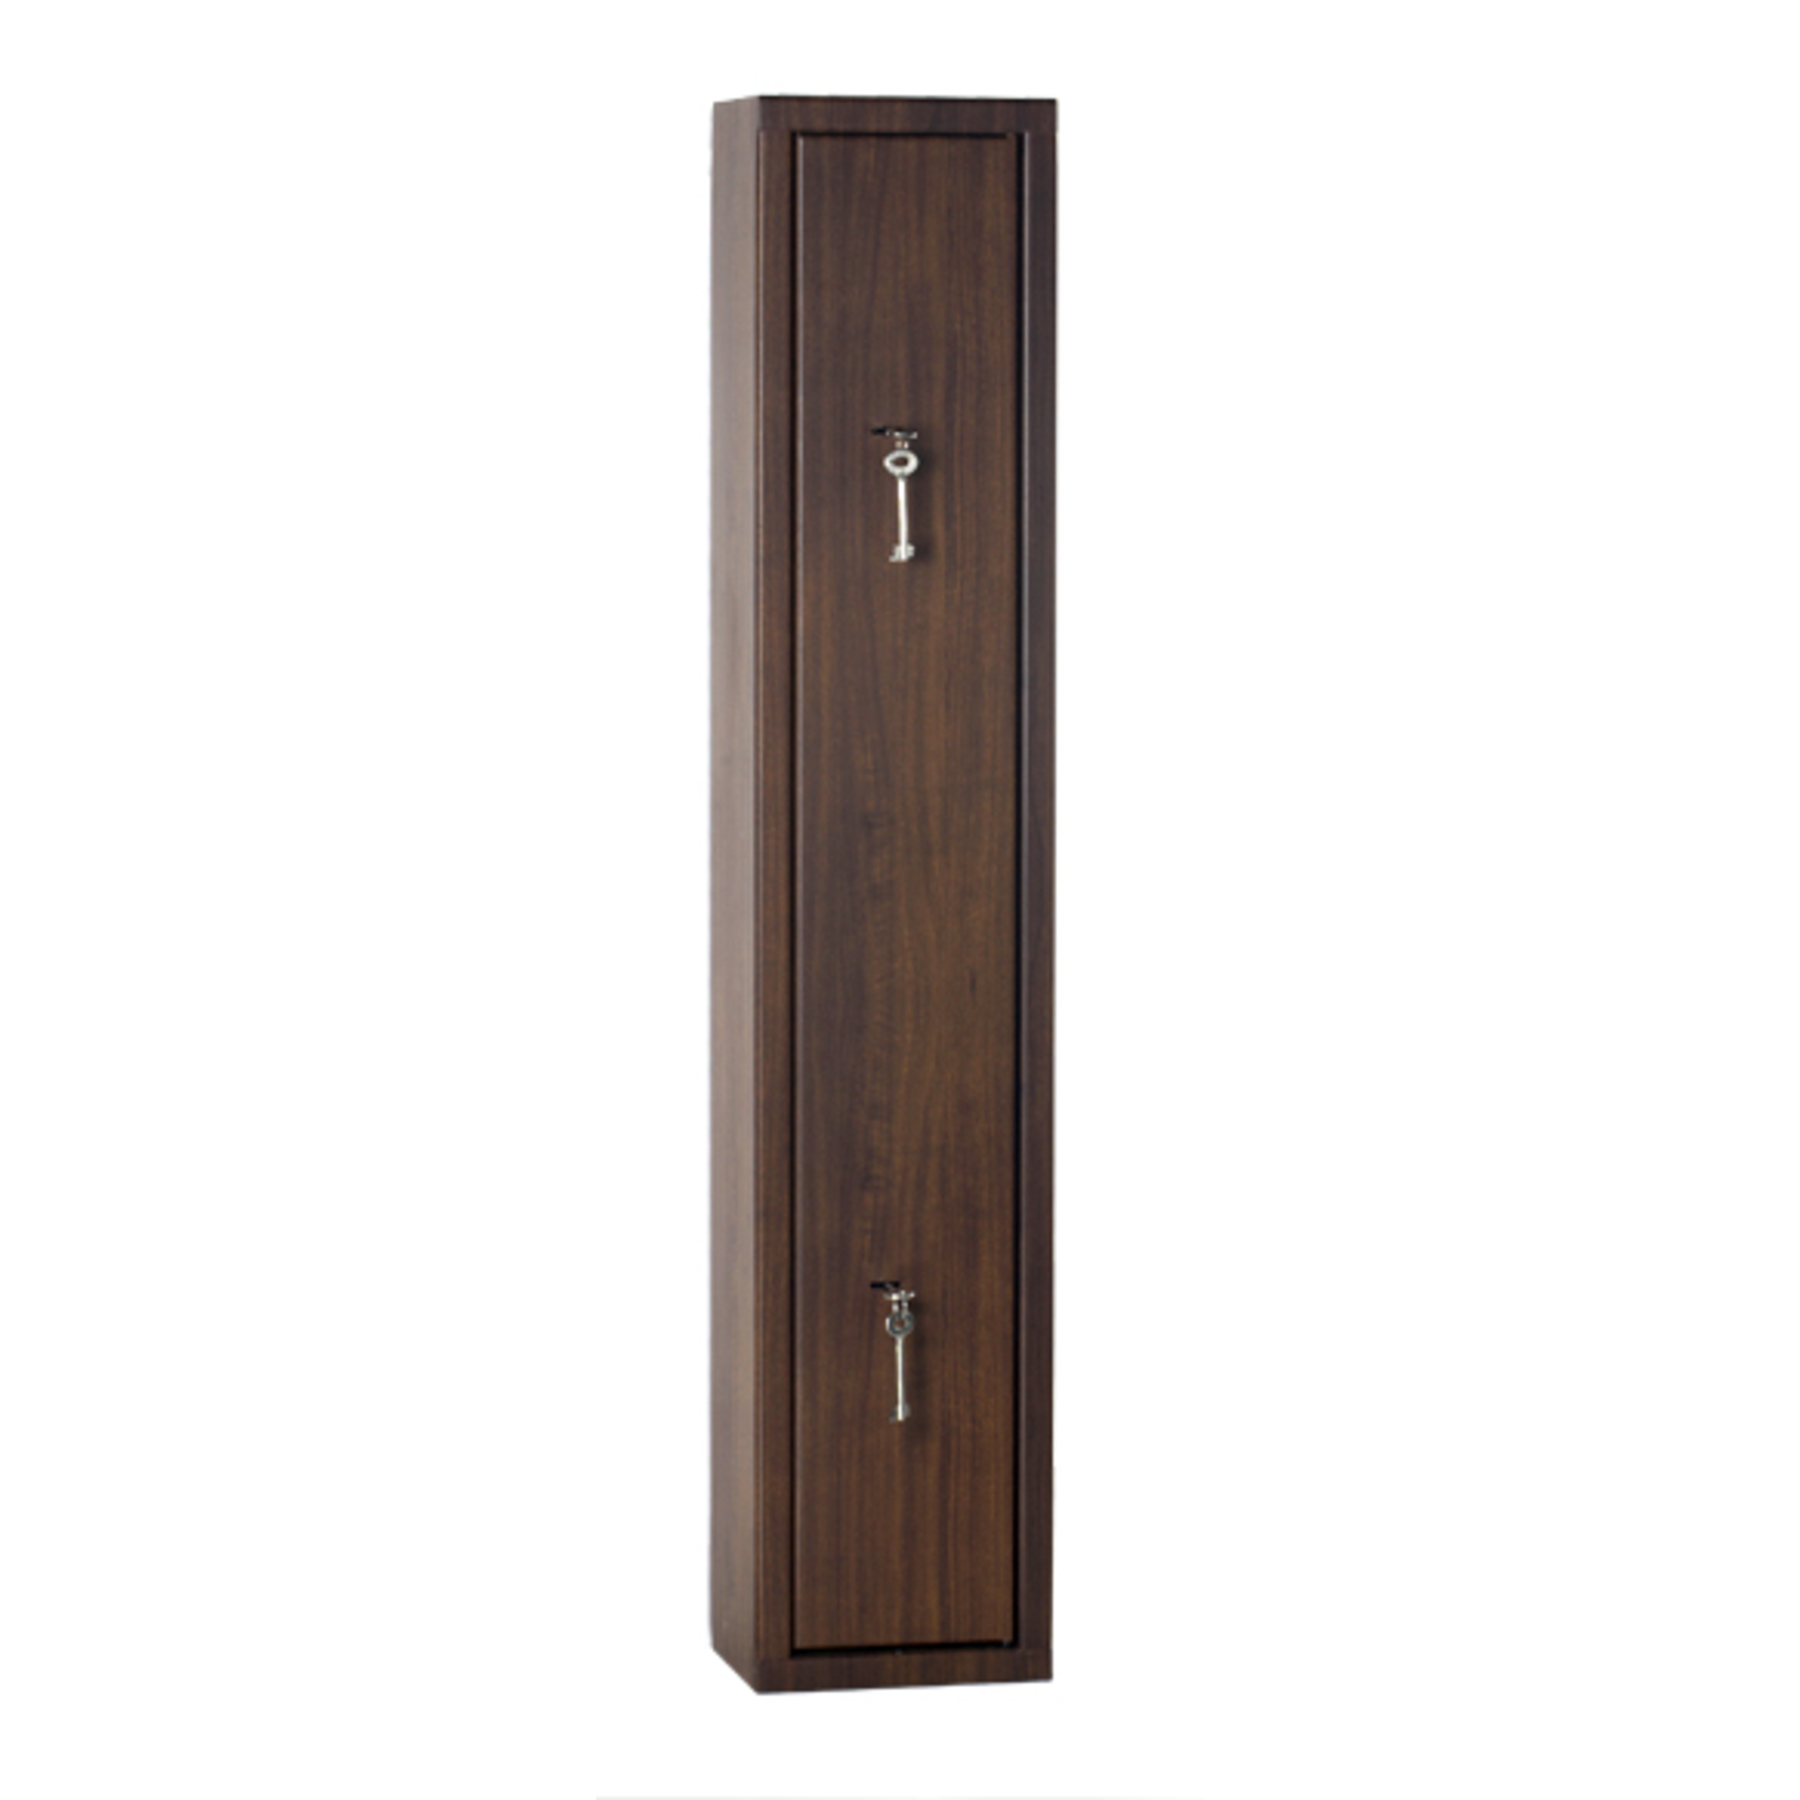 Fortify W4 Wood Effect Gun Safe | All Safes Ireland